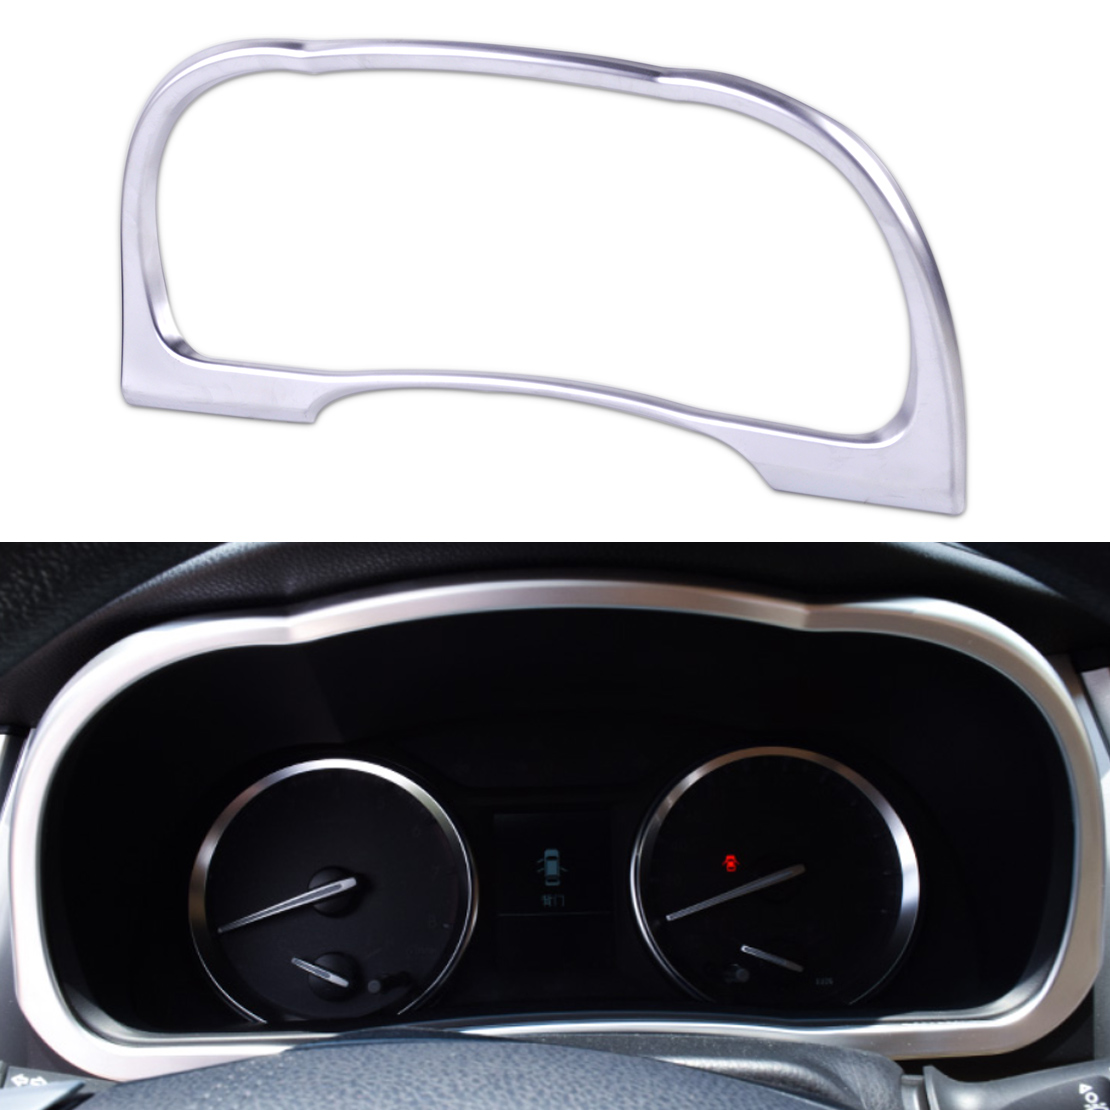 CITALL Car-styling ABS Matte Chrome Dashboard Frame Instrument Panel Cover Trim For Toyota Highlander Kluger 2014 2015 2016 2017 citall 4pcs car interior abs matte chrome door window switch console panel cover trim for toyota highlander 2014 2015 2016 2017